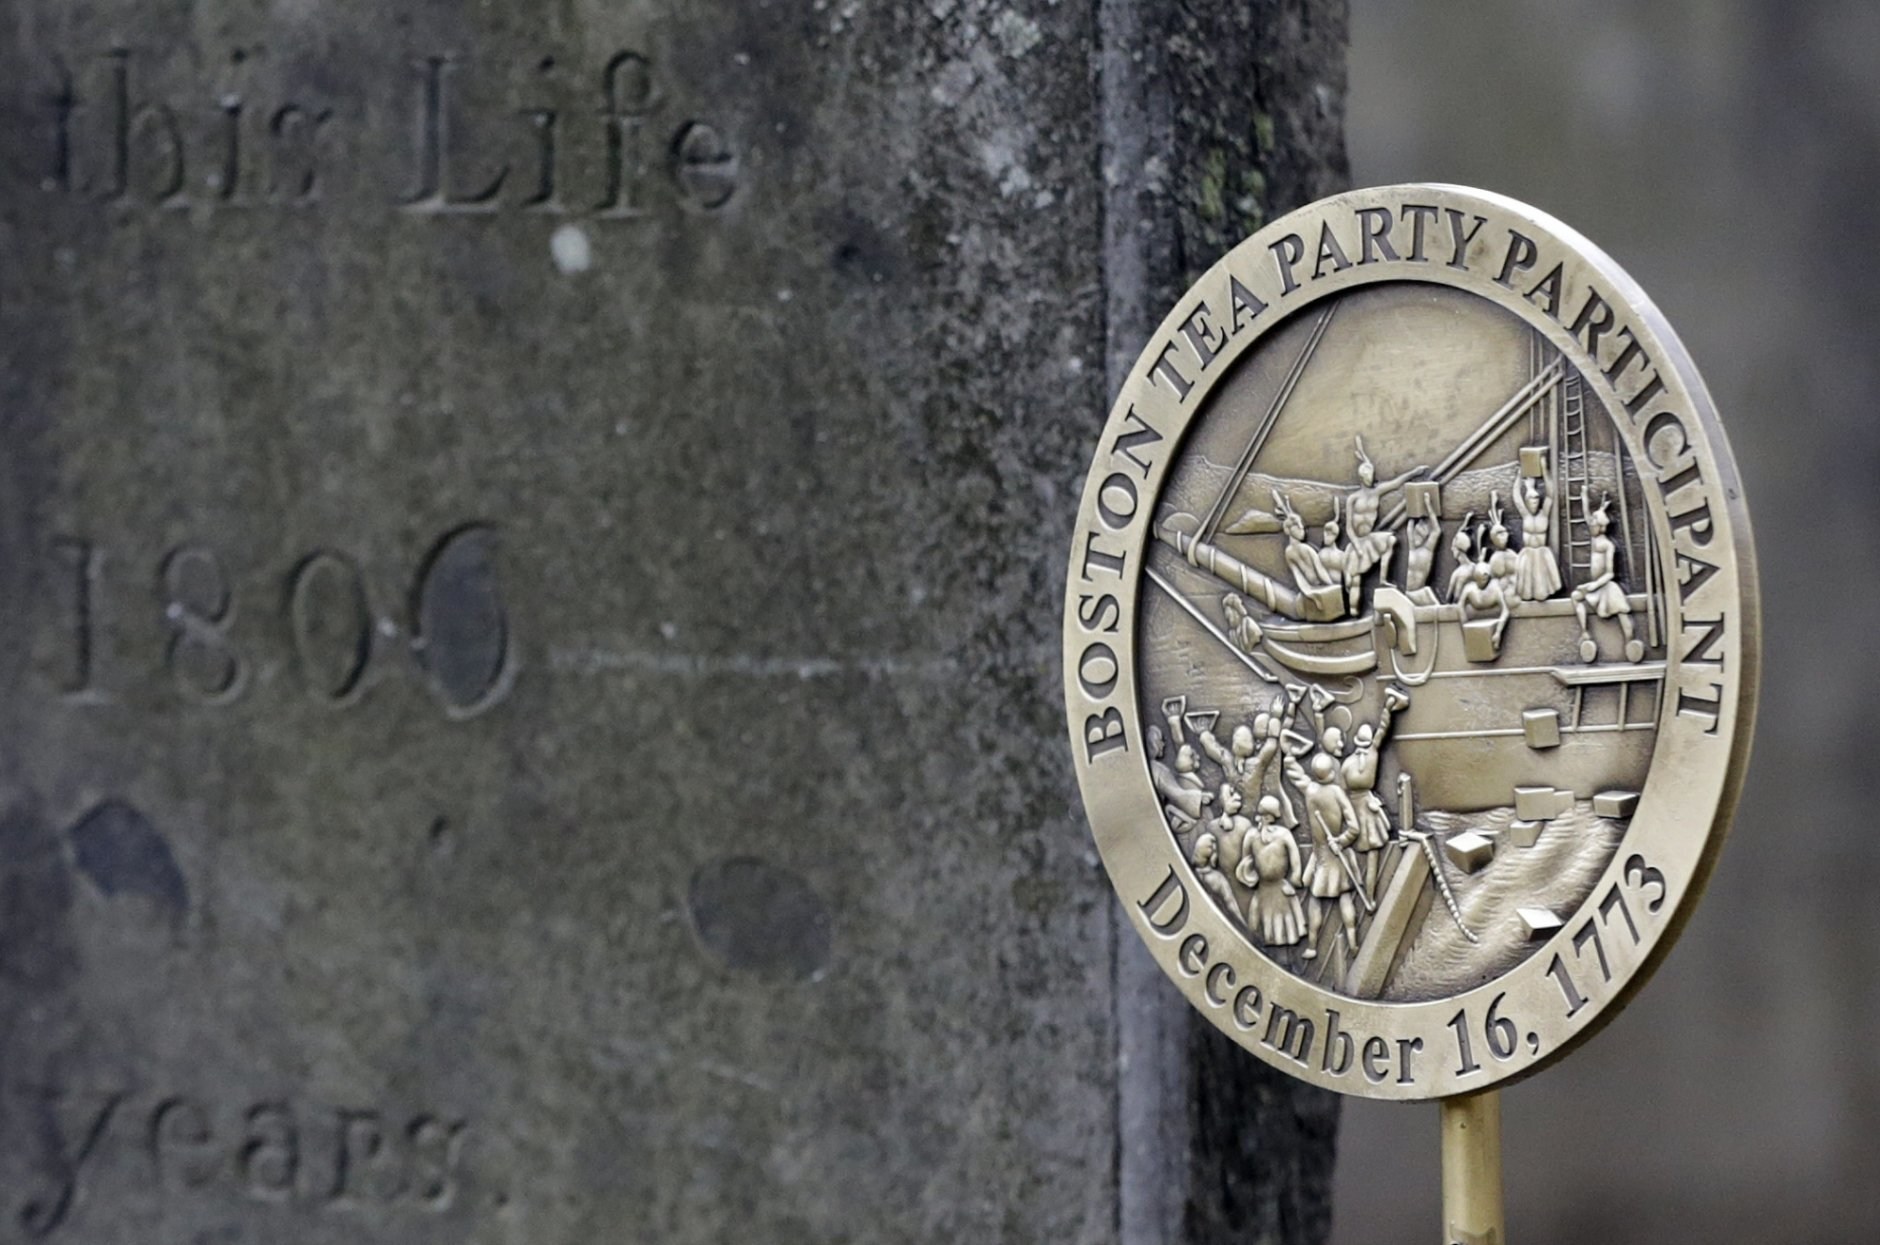 A commemorative marker stands, Tuesday, Nov. 27, 2018, at Central Burying Ground on Boston Common at the gravesite of Bartholomew Trow, a participant in the Dec. 16, 1773 protest known as the Boston Tea Party. This year is the 245th anniversary of the protest during which colonists protesting taxation without representation threw British tea into Boston Harbor, considered a pivotal event that led to the American Revolution. (AP Photo/Elise Amendola)